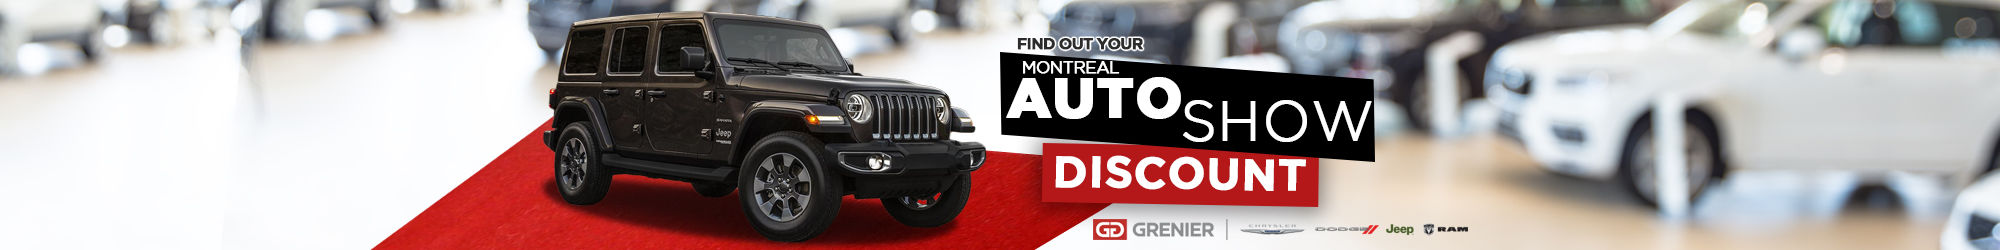 Find out about your auto show discount